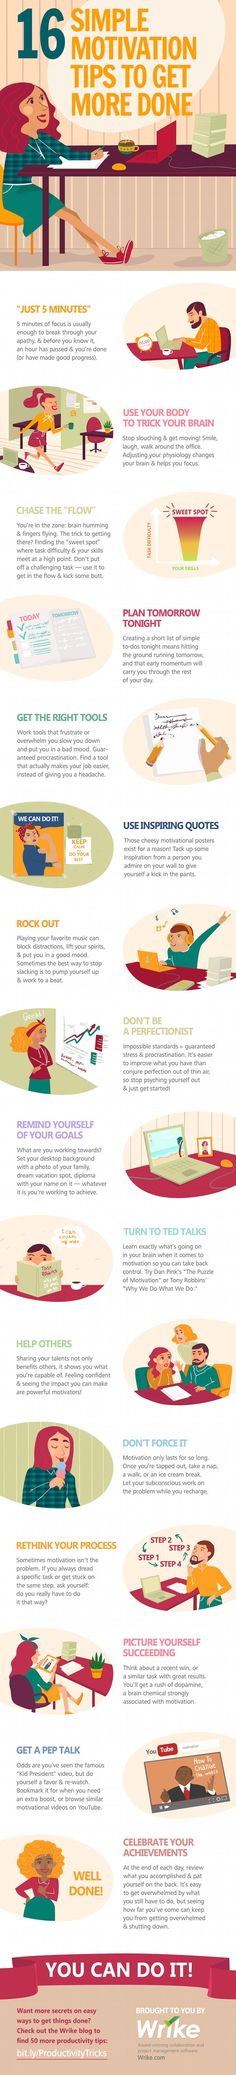 16 Easy-To-Try Motivation Tips To Get More Done - #Infographic